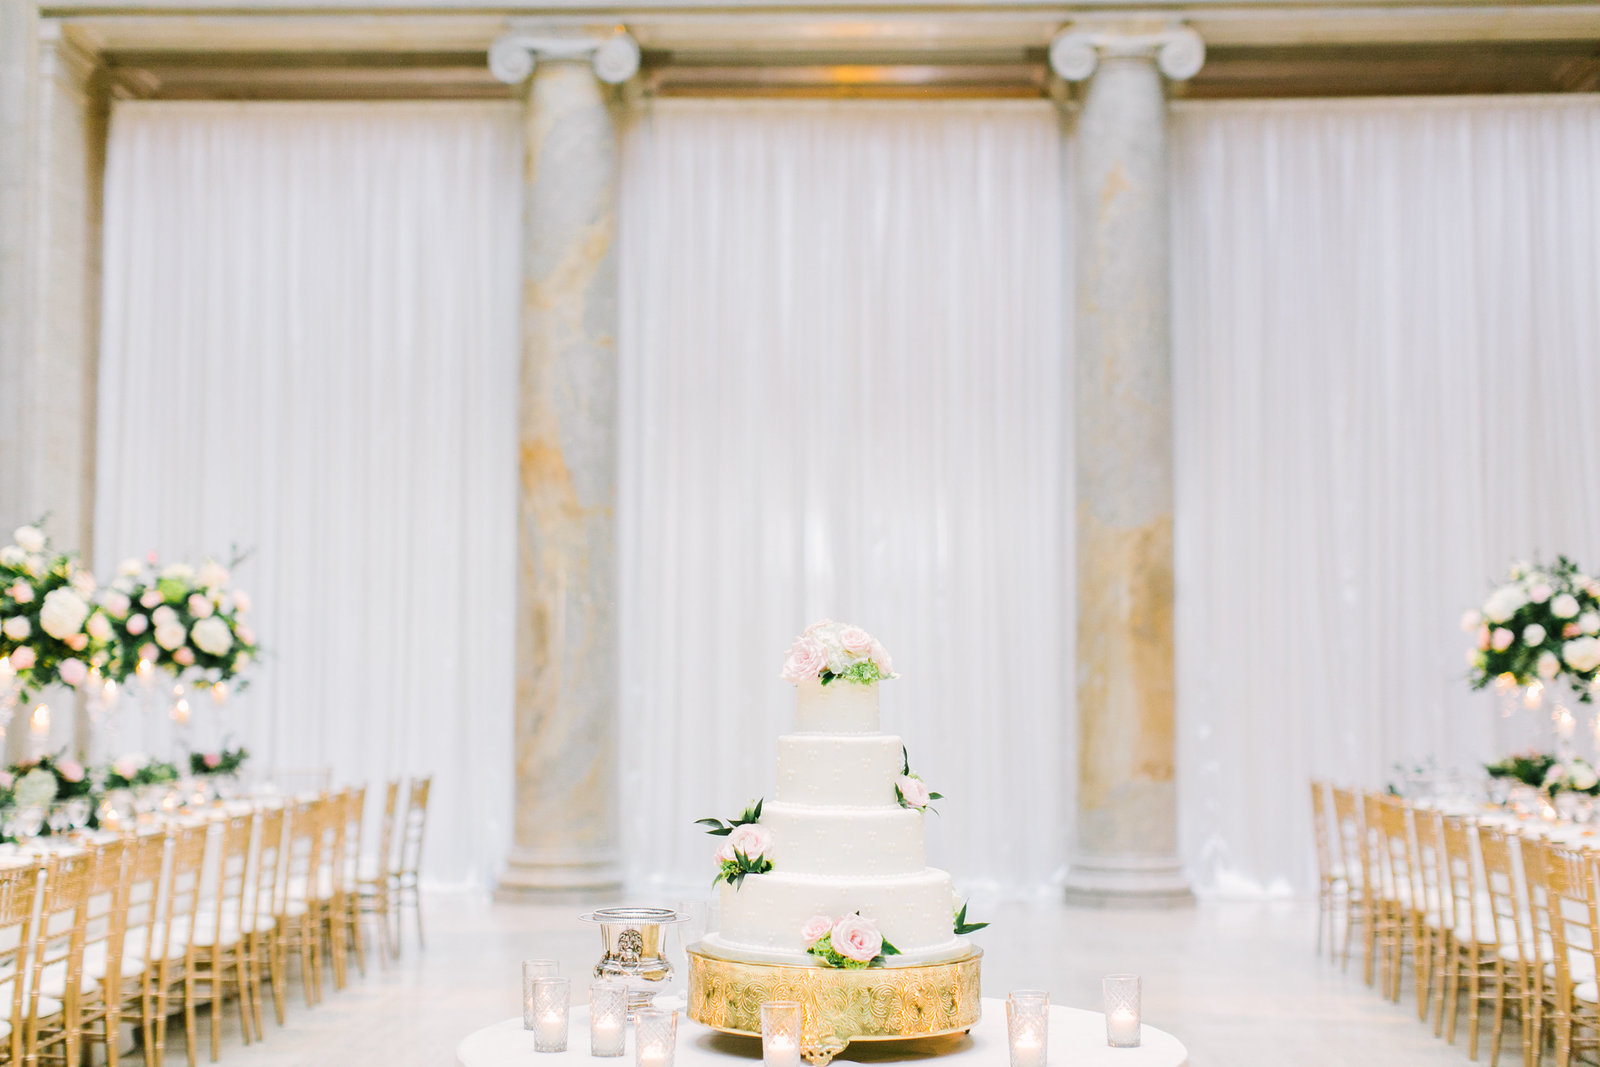 Nelson-Atkins-Kansas-City-Luxury-Garden-Wedding-Planning-Madison-Sanders-370